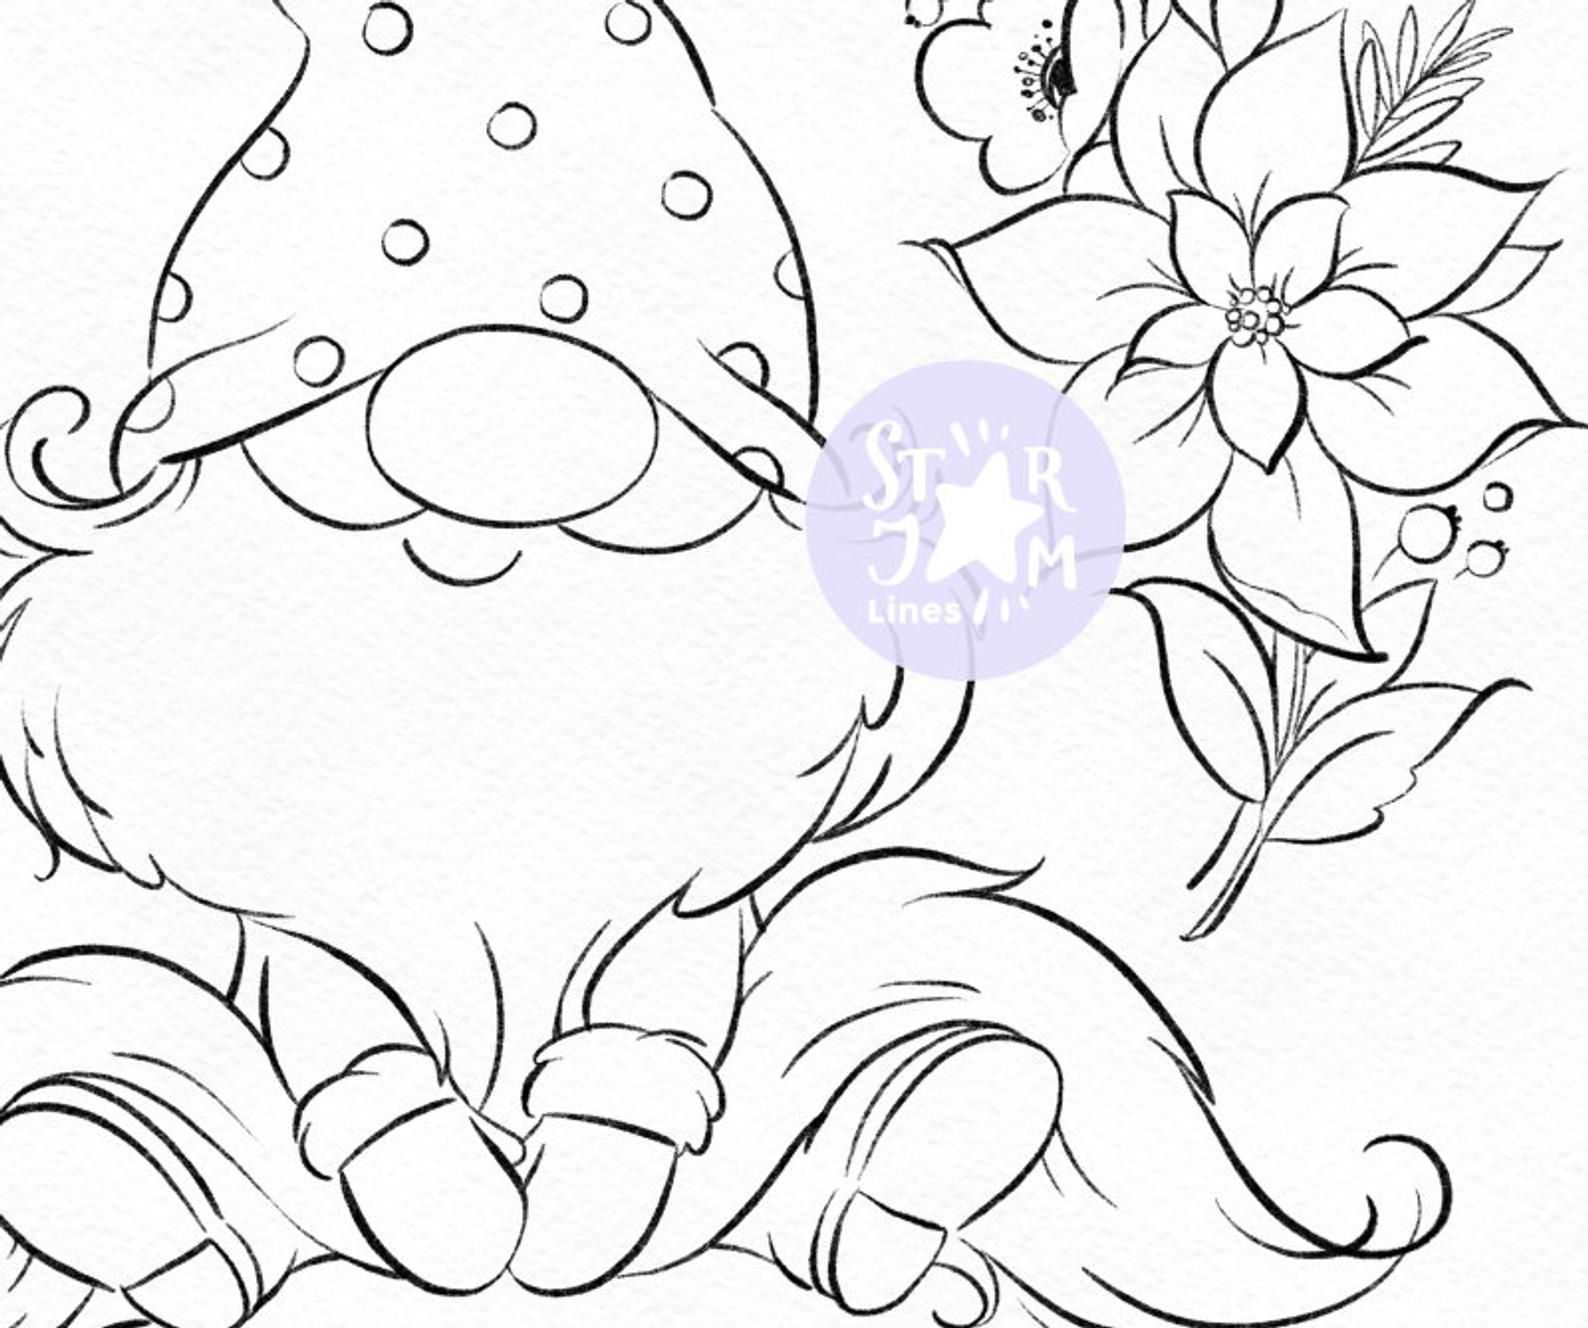 Christmas Gnome Digi Stamp Nordic Coloring Page Digital Art Xmas Christmas Tree Little Dwarf Holiday Cute Winter Snow Wreath In 2020 Digi Stamp Abstract Coloring Pages Coloring Pages